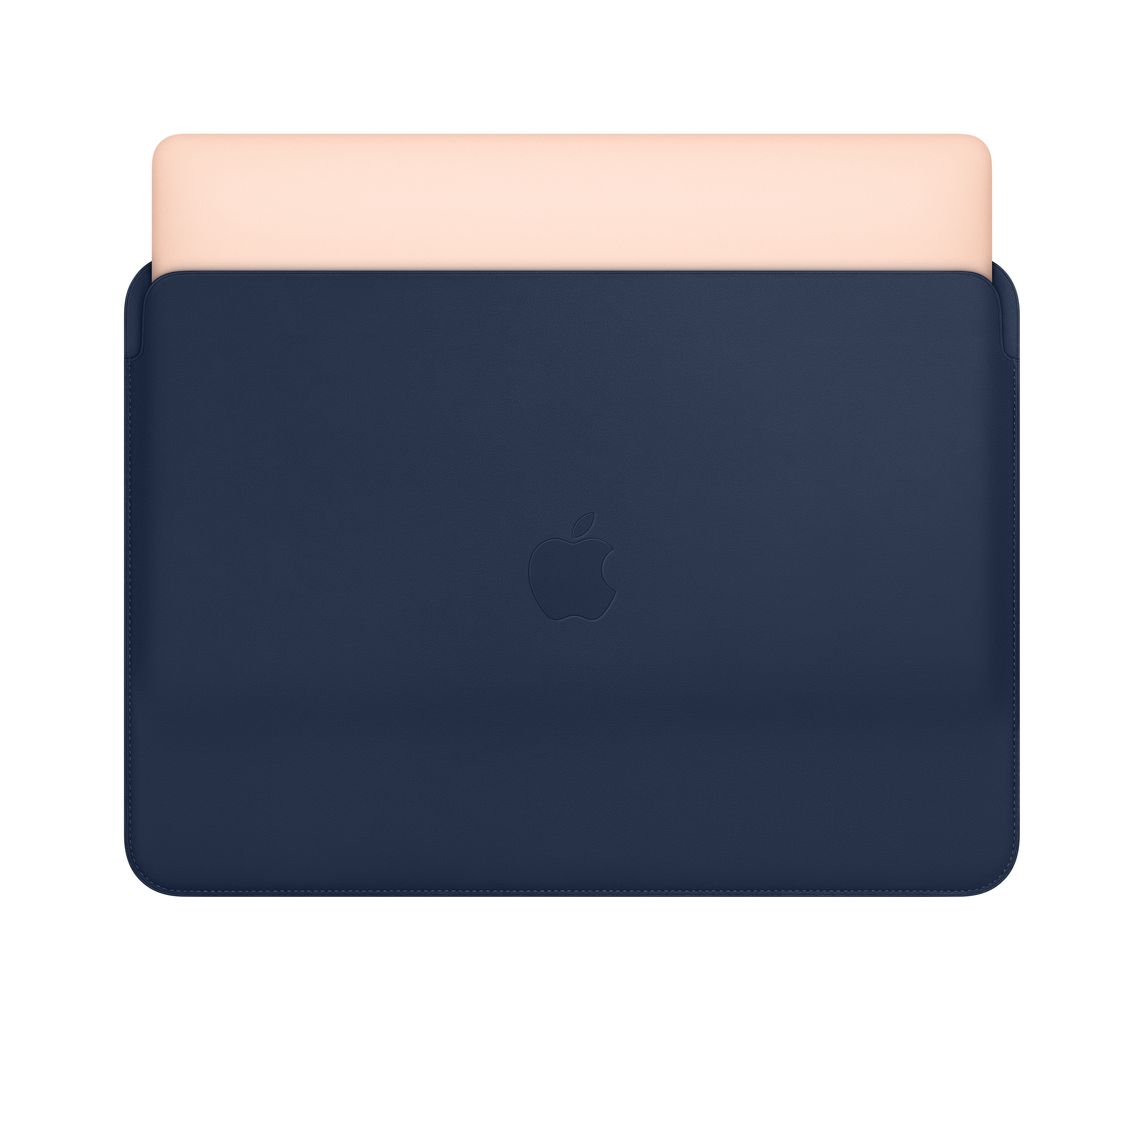 cheap for discount 6bf38 cb37a Leather Sleeve for 13-inch MacBook Air and MacBook Pro - Midnight Blue